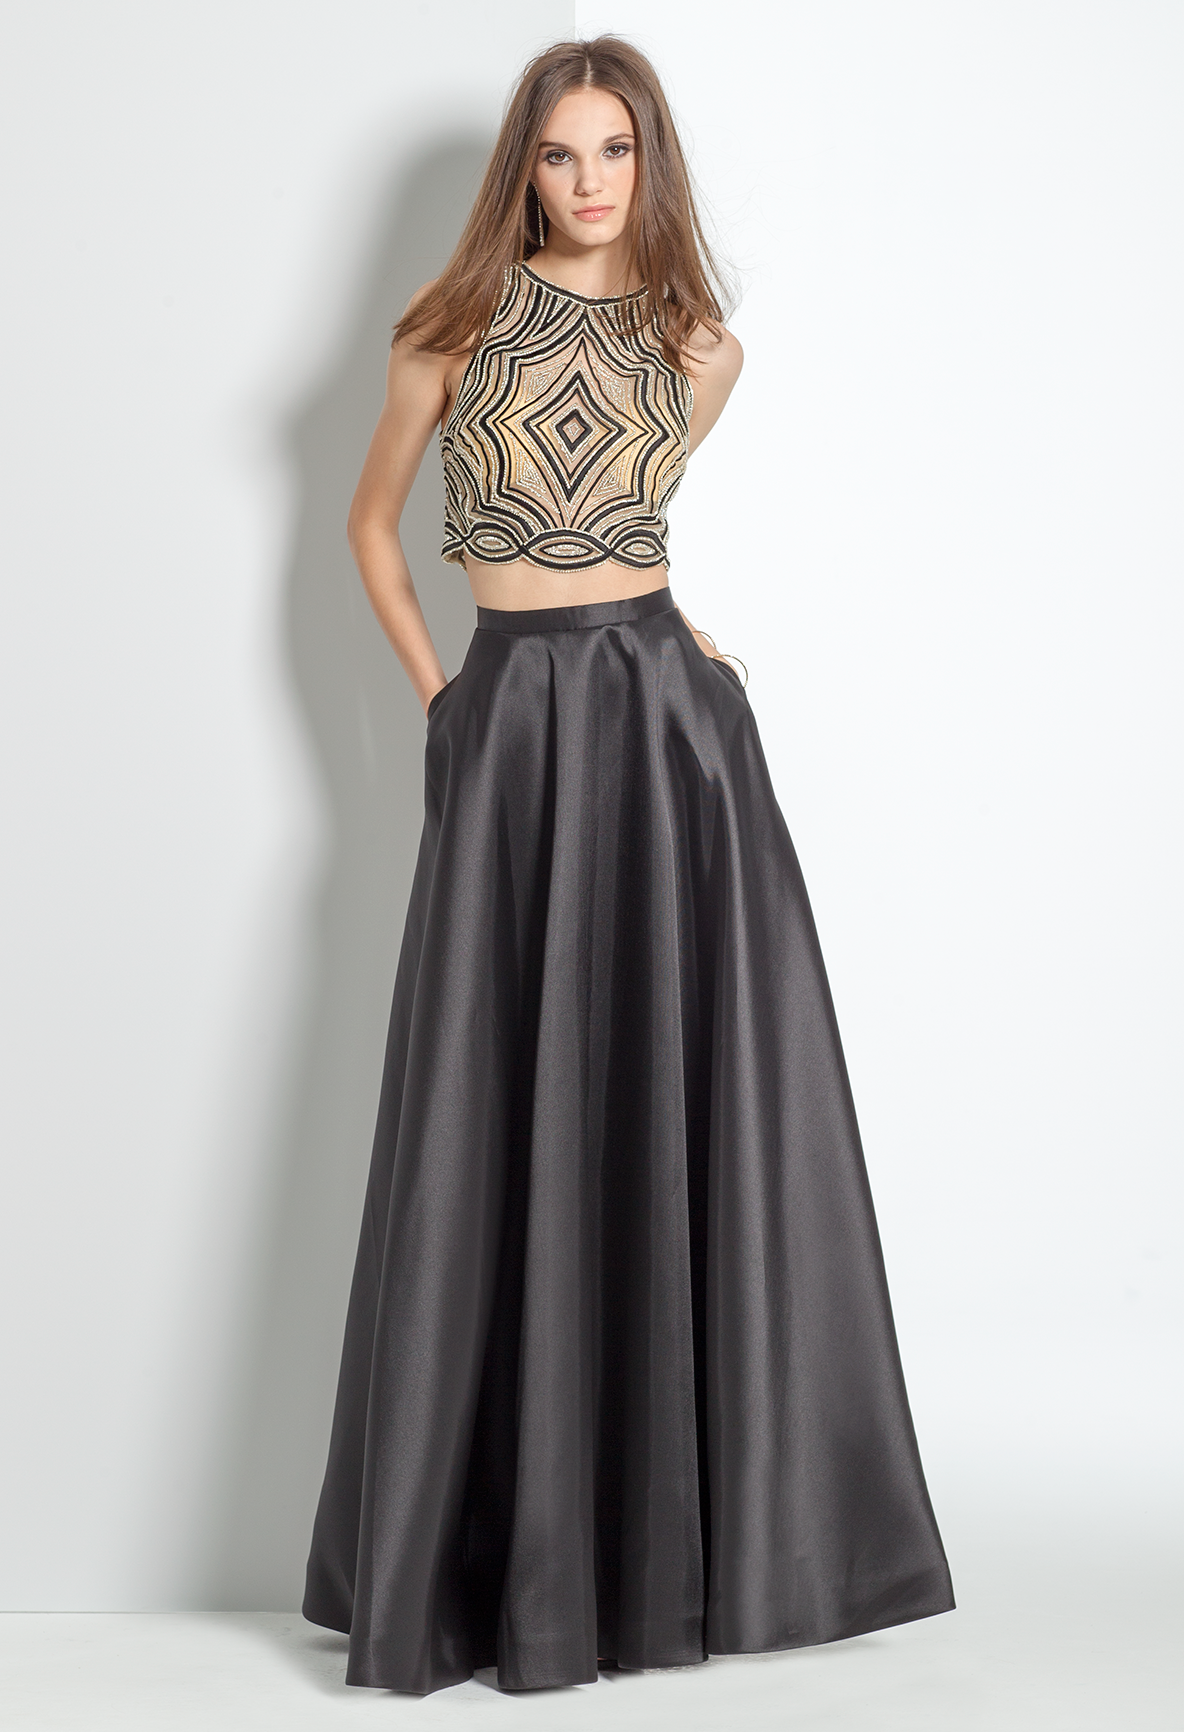 0b99f31d0e2d Mikado And Embroidered Illusion Ball Gown #camillelavie | Trend ...